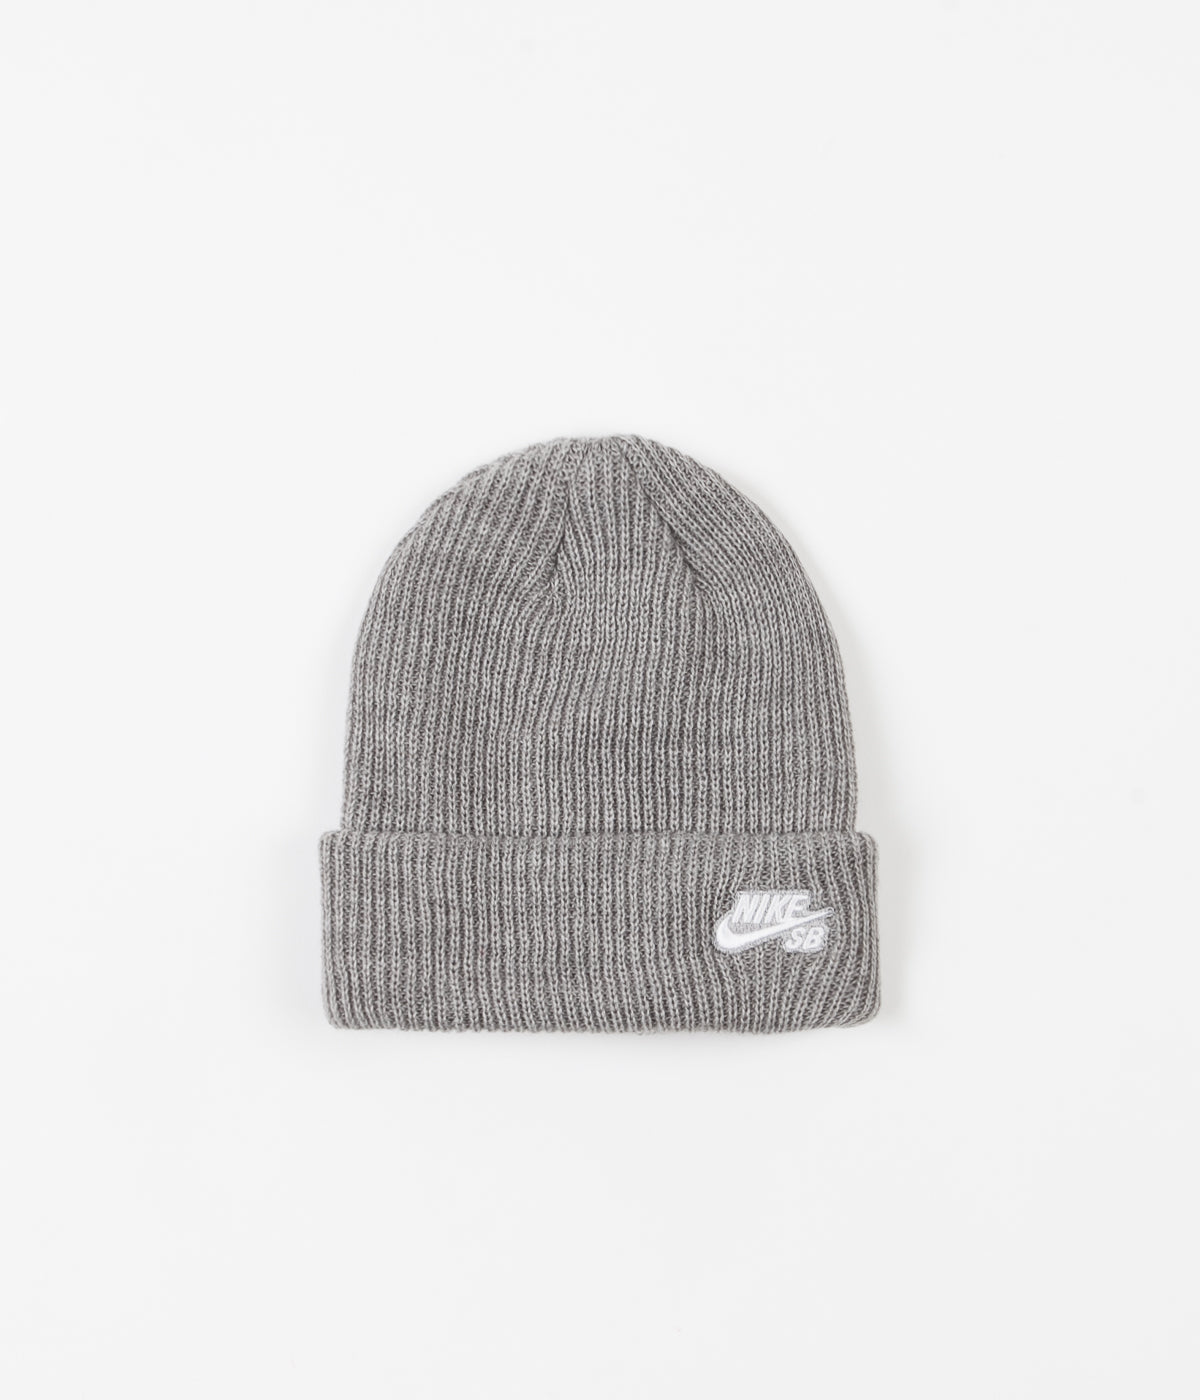 c86a01d21 Nike SB Fisherman Beanie - Dark Grey Heather / White